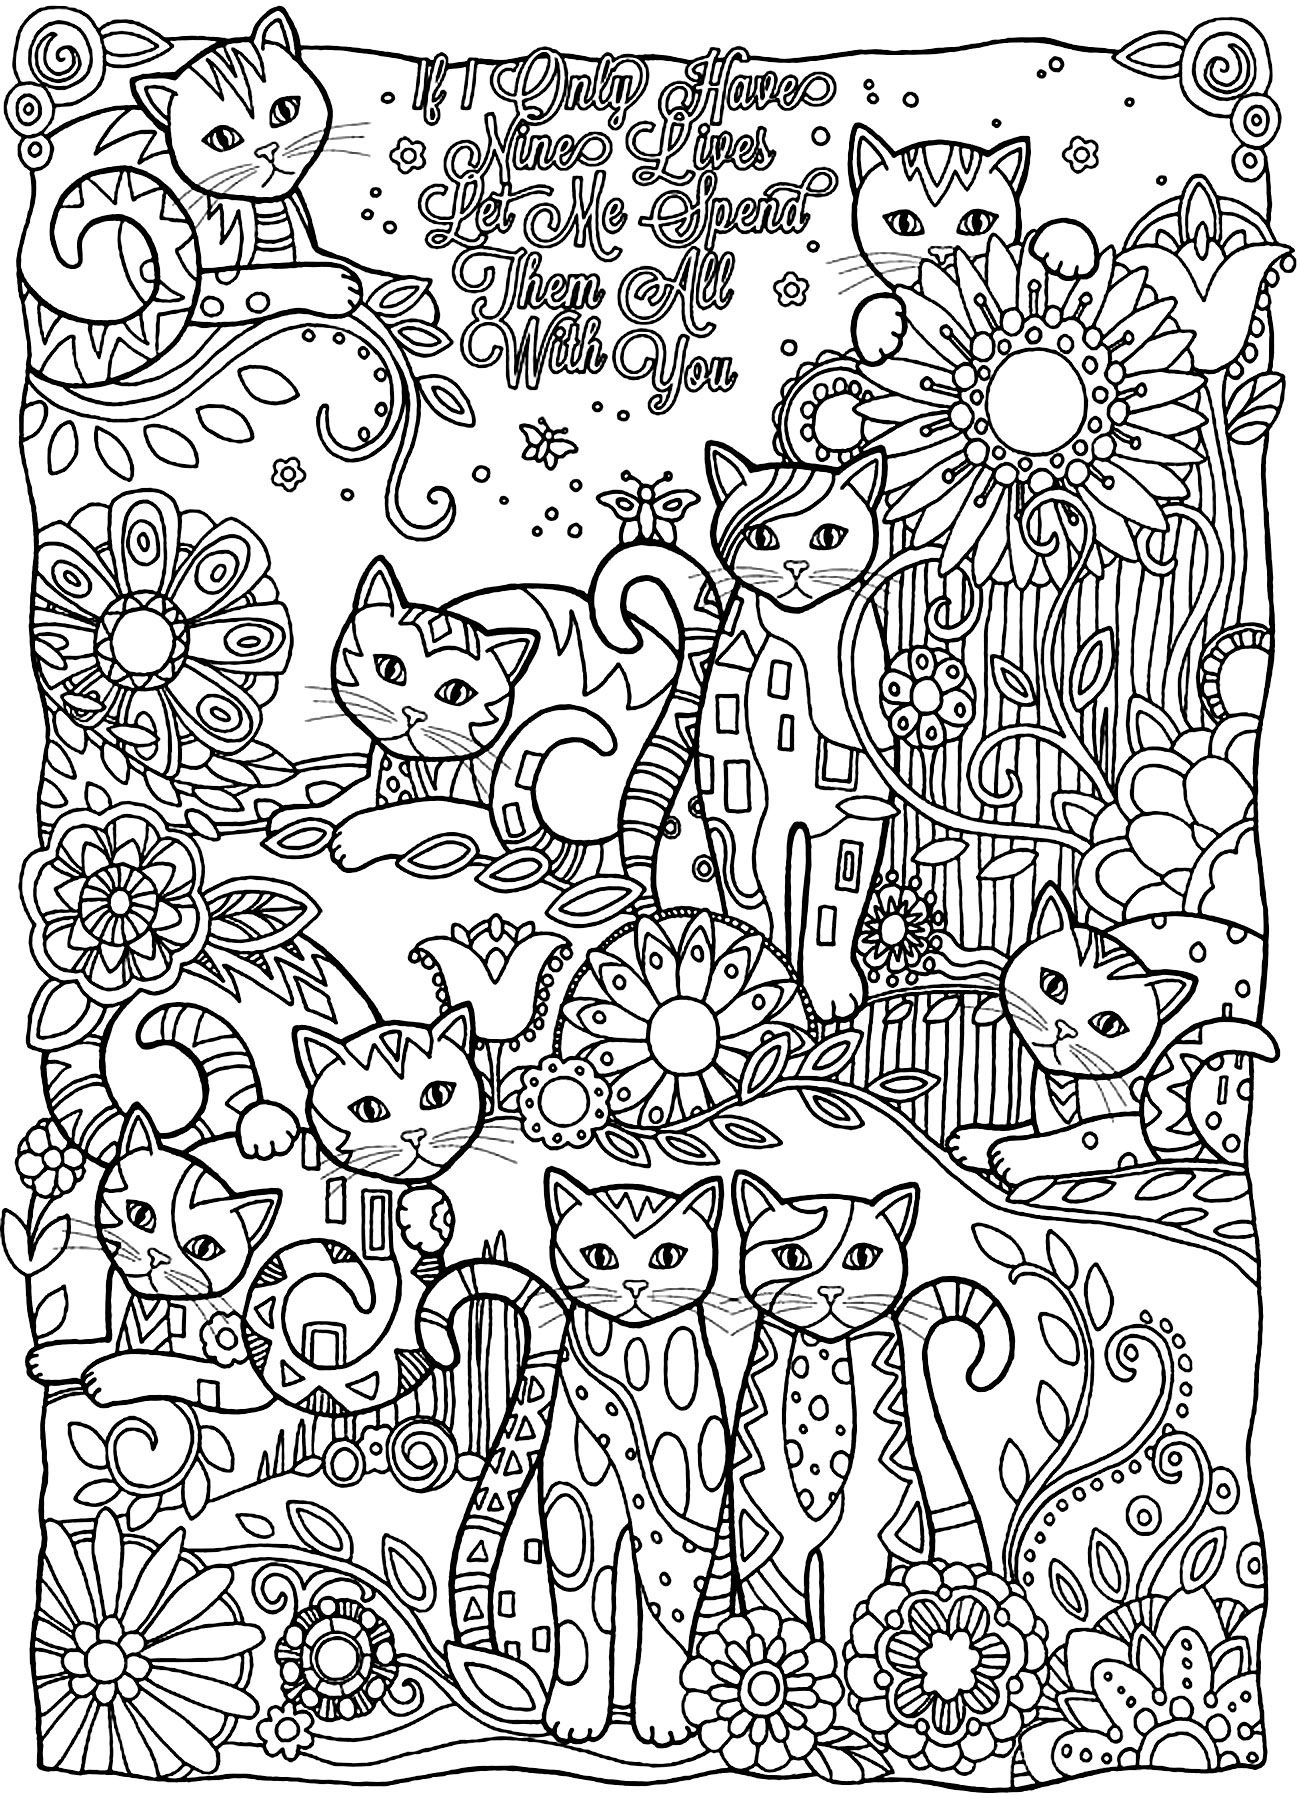 detailed cat coloring pages printable big cat jaguar coloring pages coloring pages coloring cat pages detailed